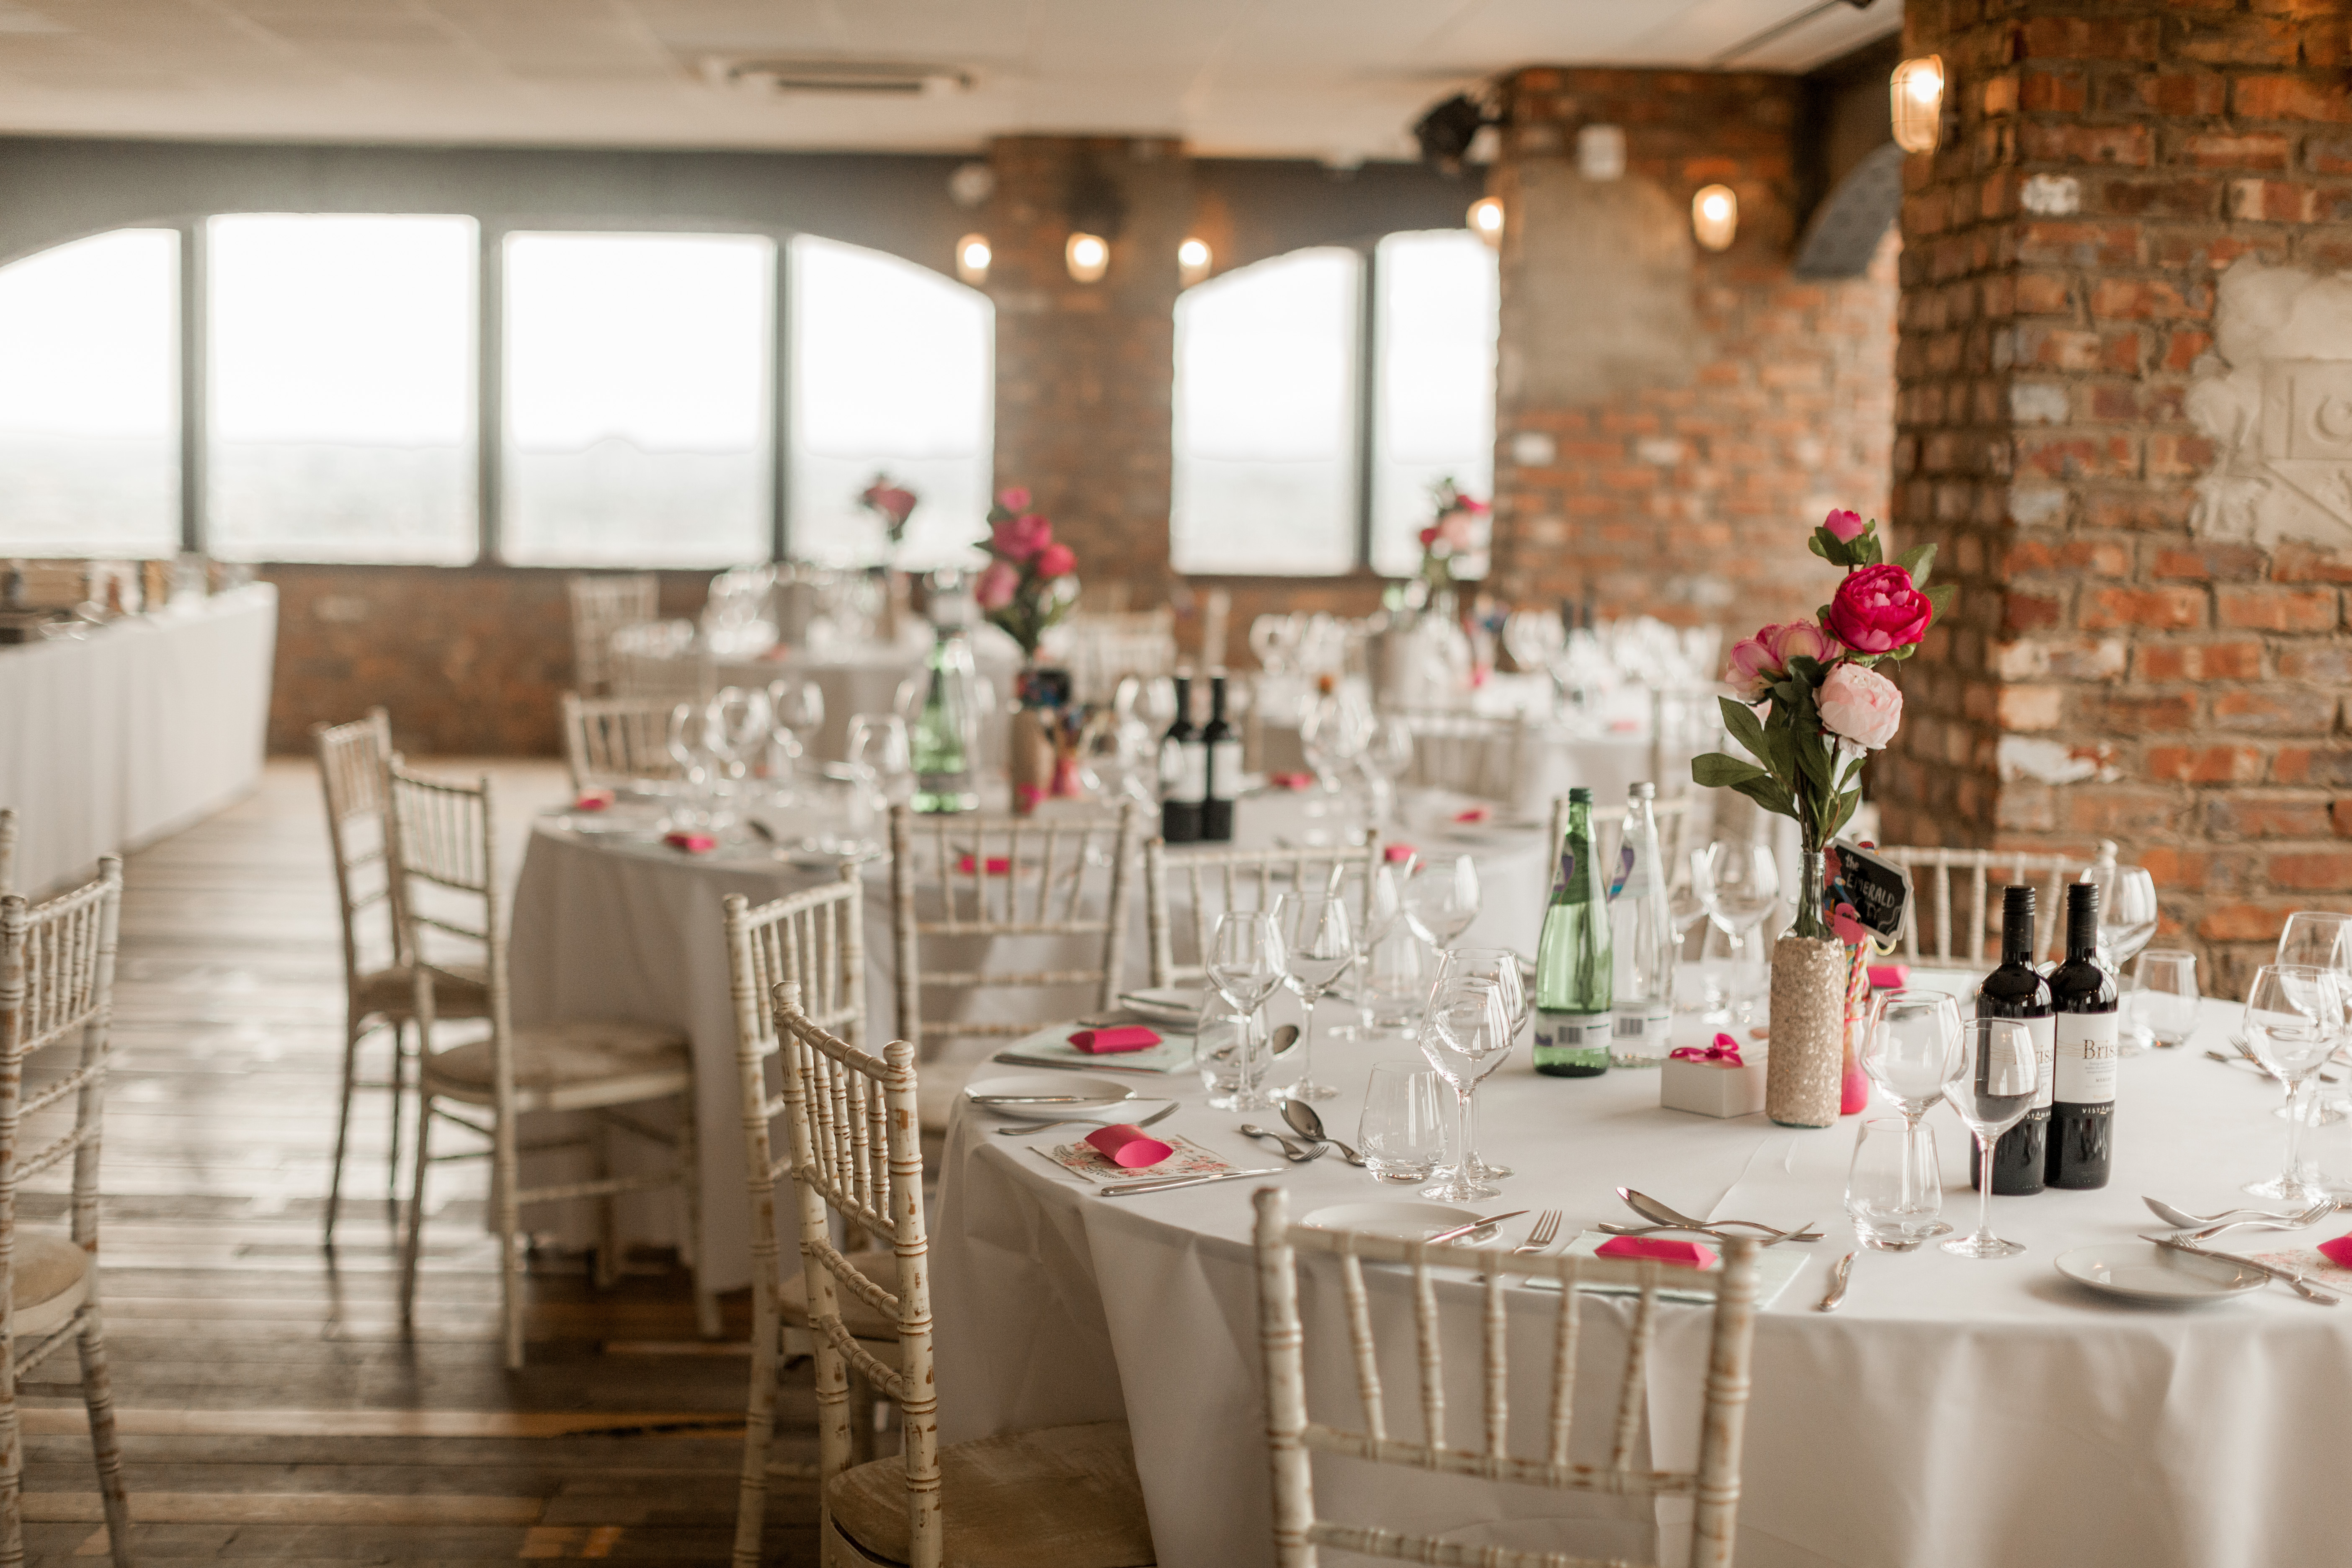 Catering Alternatives For Your Wedding